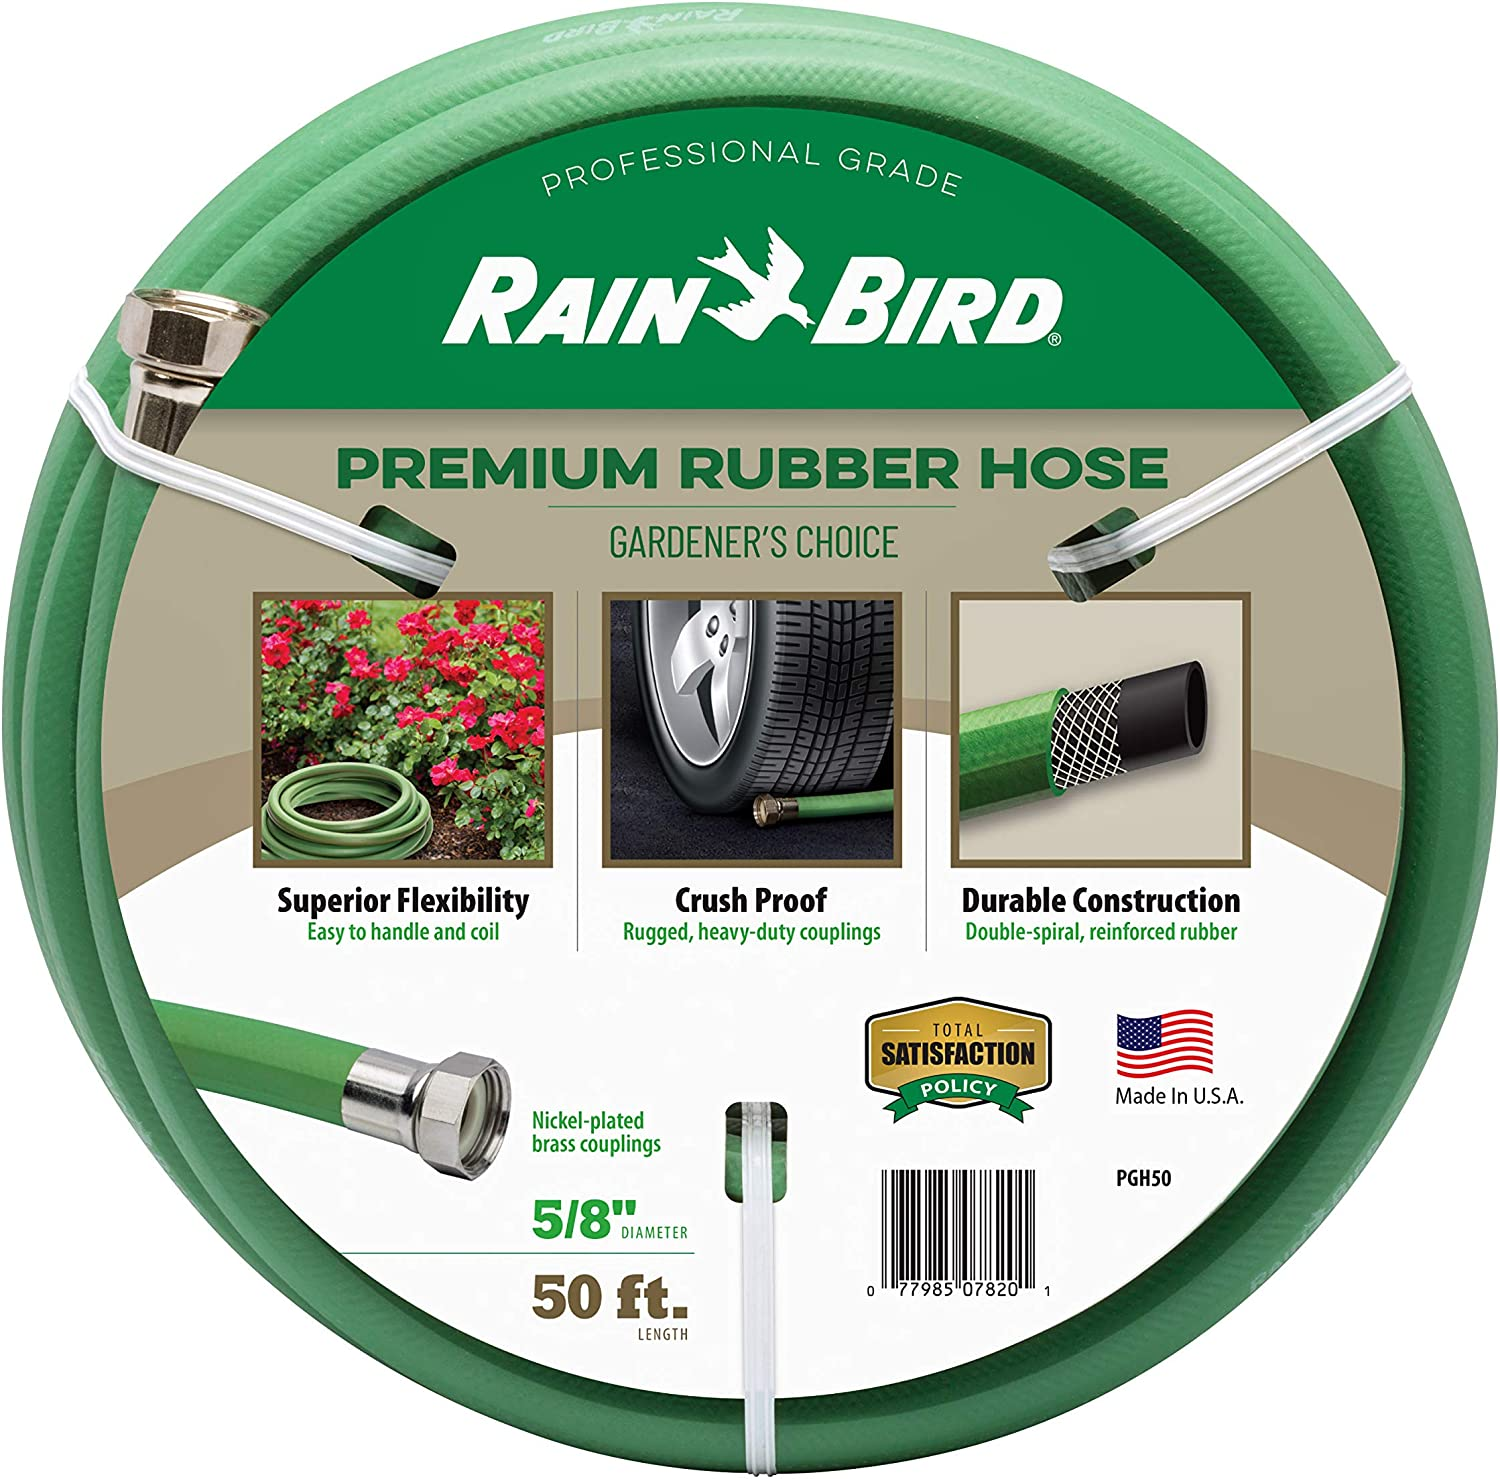 "Rain Bird PGH50 Premium Heavy-Duty Garden Hose, 100% EDPM Rubber, Hexagonal, Kink-Resistant, 5/8"" Inside Diameter x 50' Long, Green"